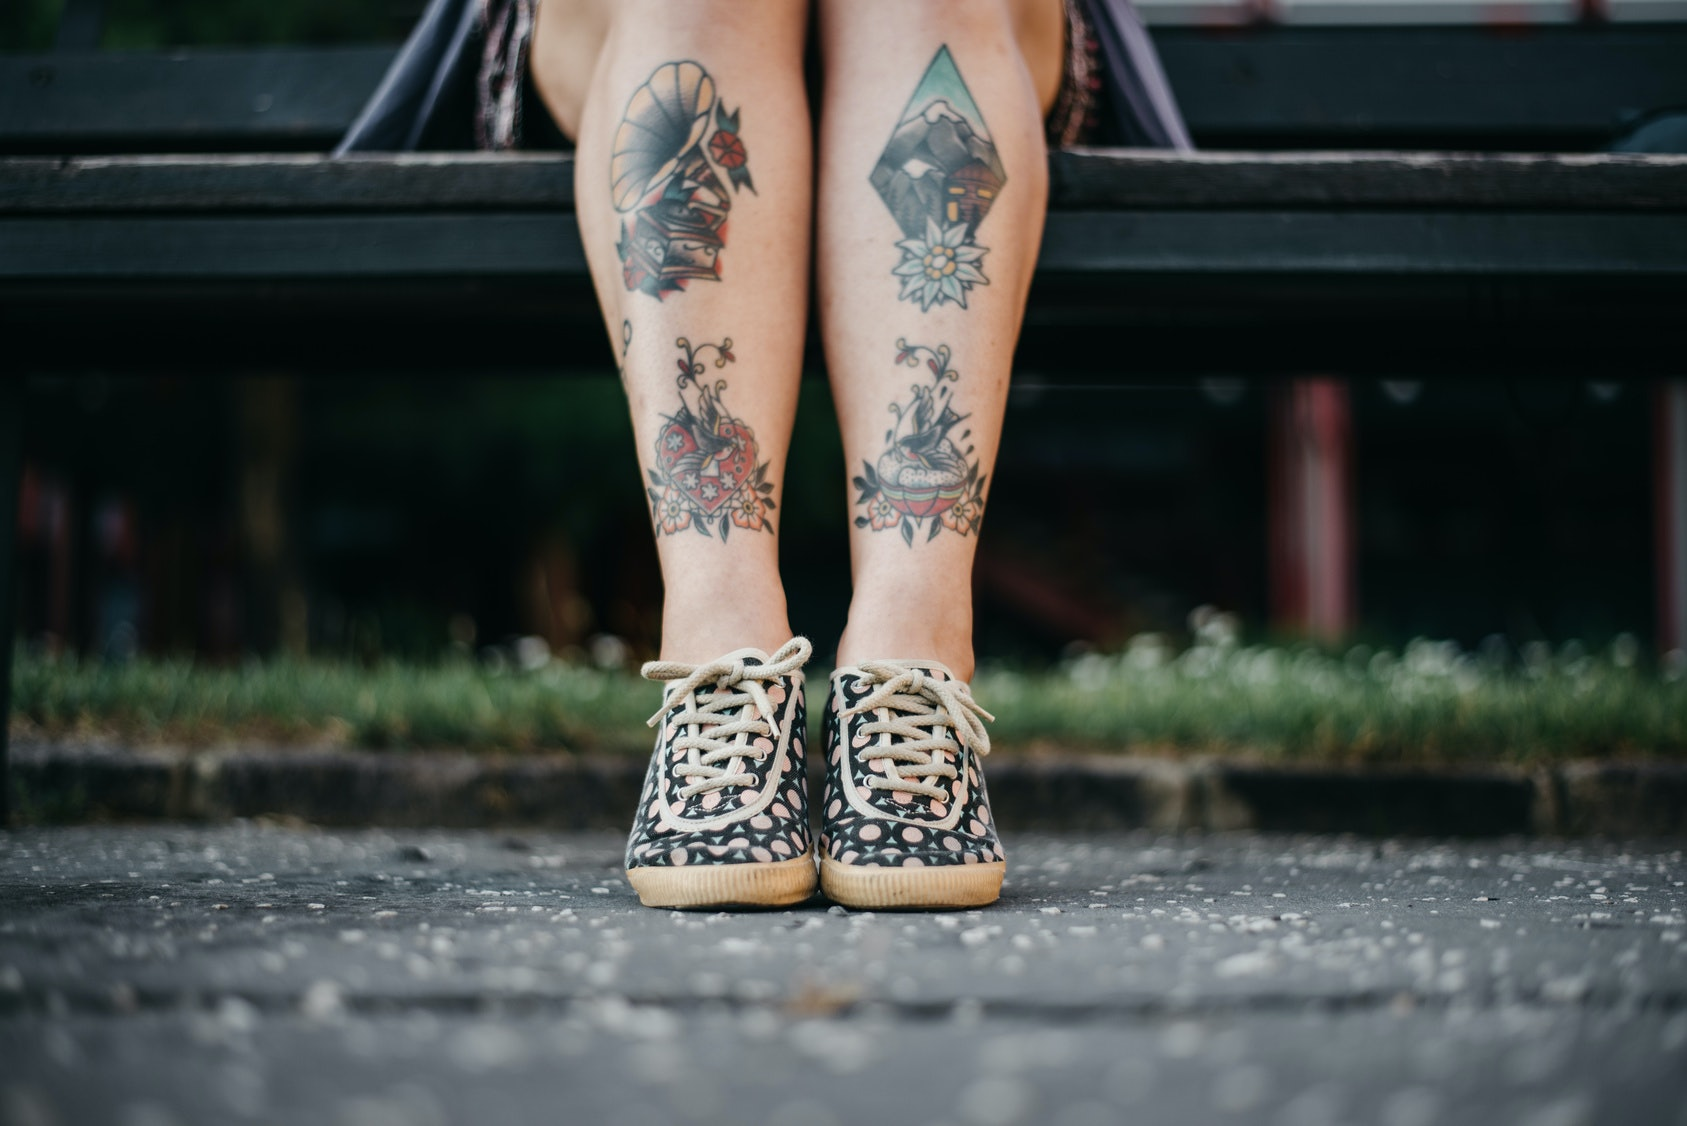 7 Tattoos That Actually Look Better As You Age According To Tattoo